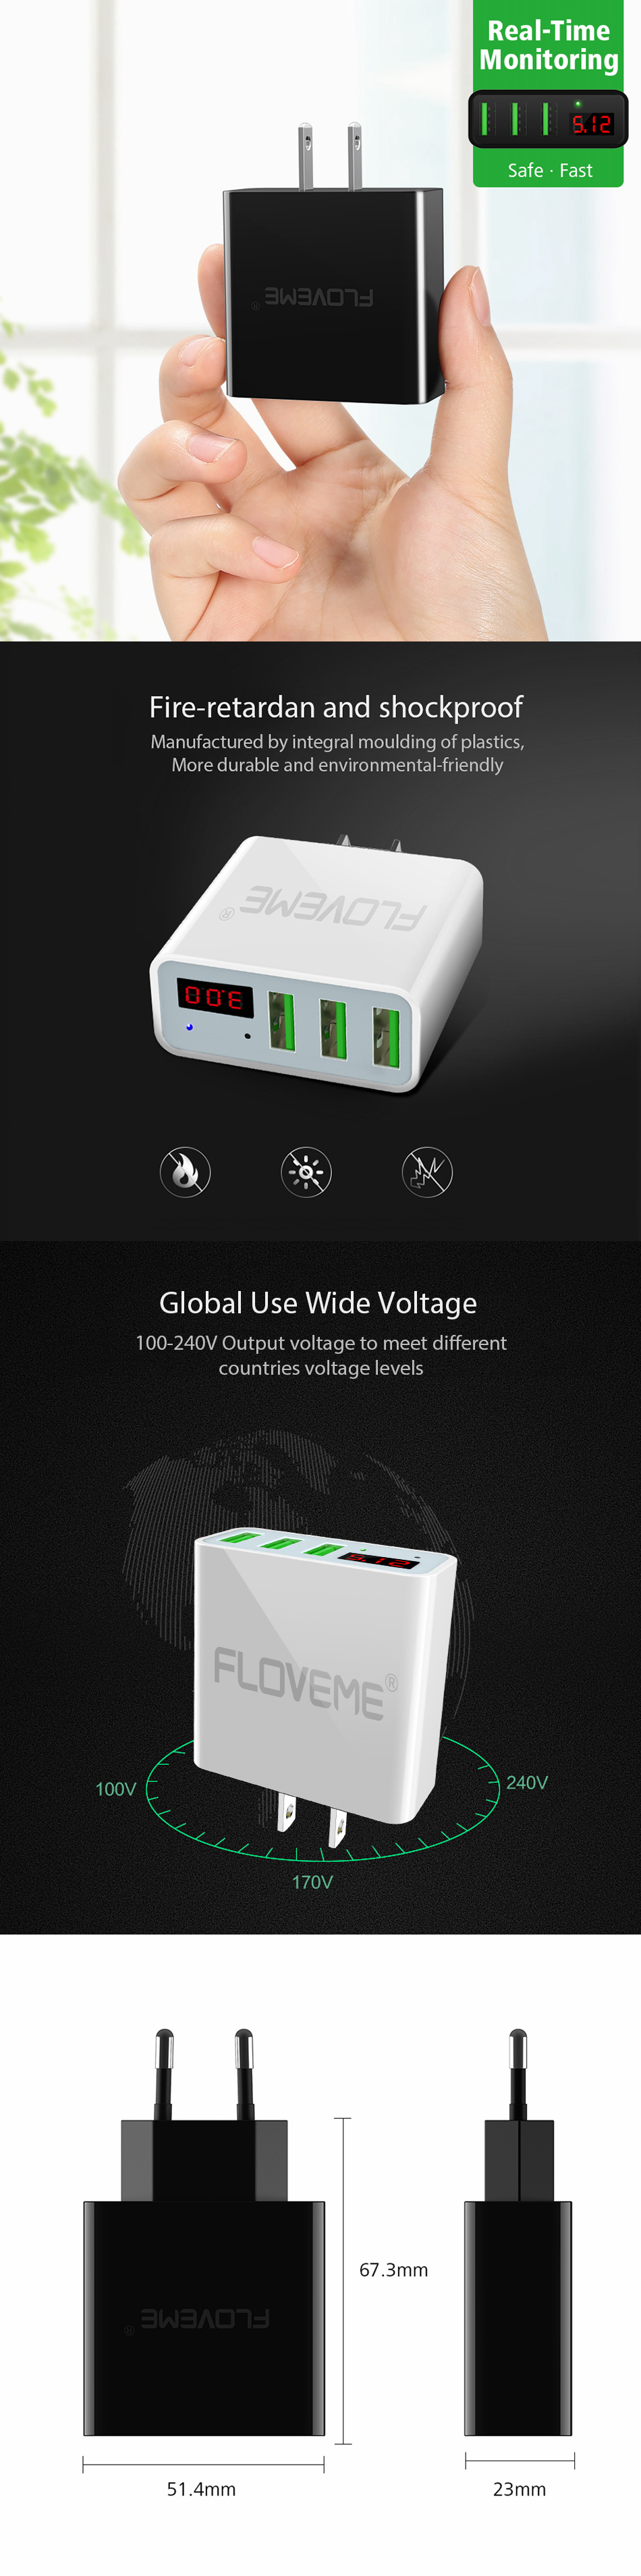 FLOVEME 2.4A LED Display 3 Ports EU Plug Fast Travel Charger For iPhone X 8 Plus OnePlus5 S8 Xiaomi6